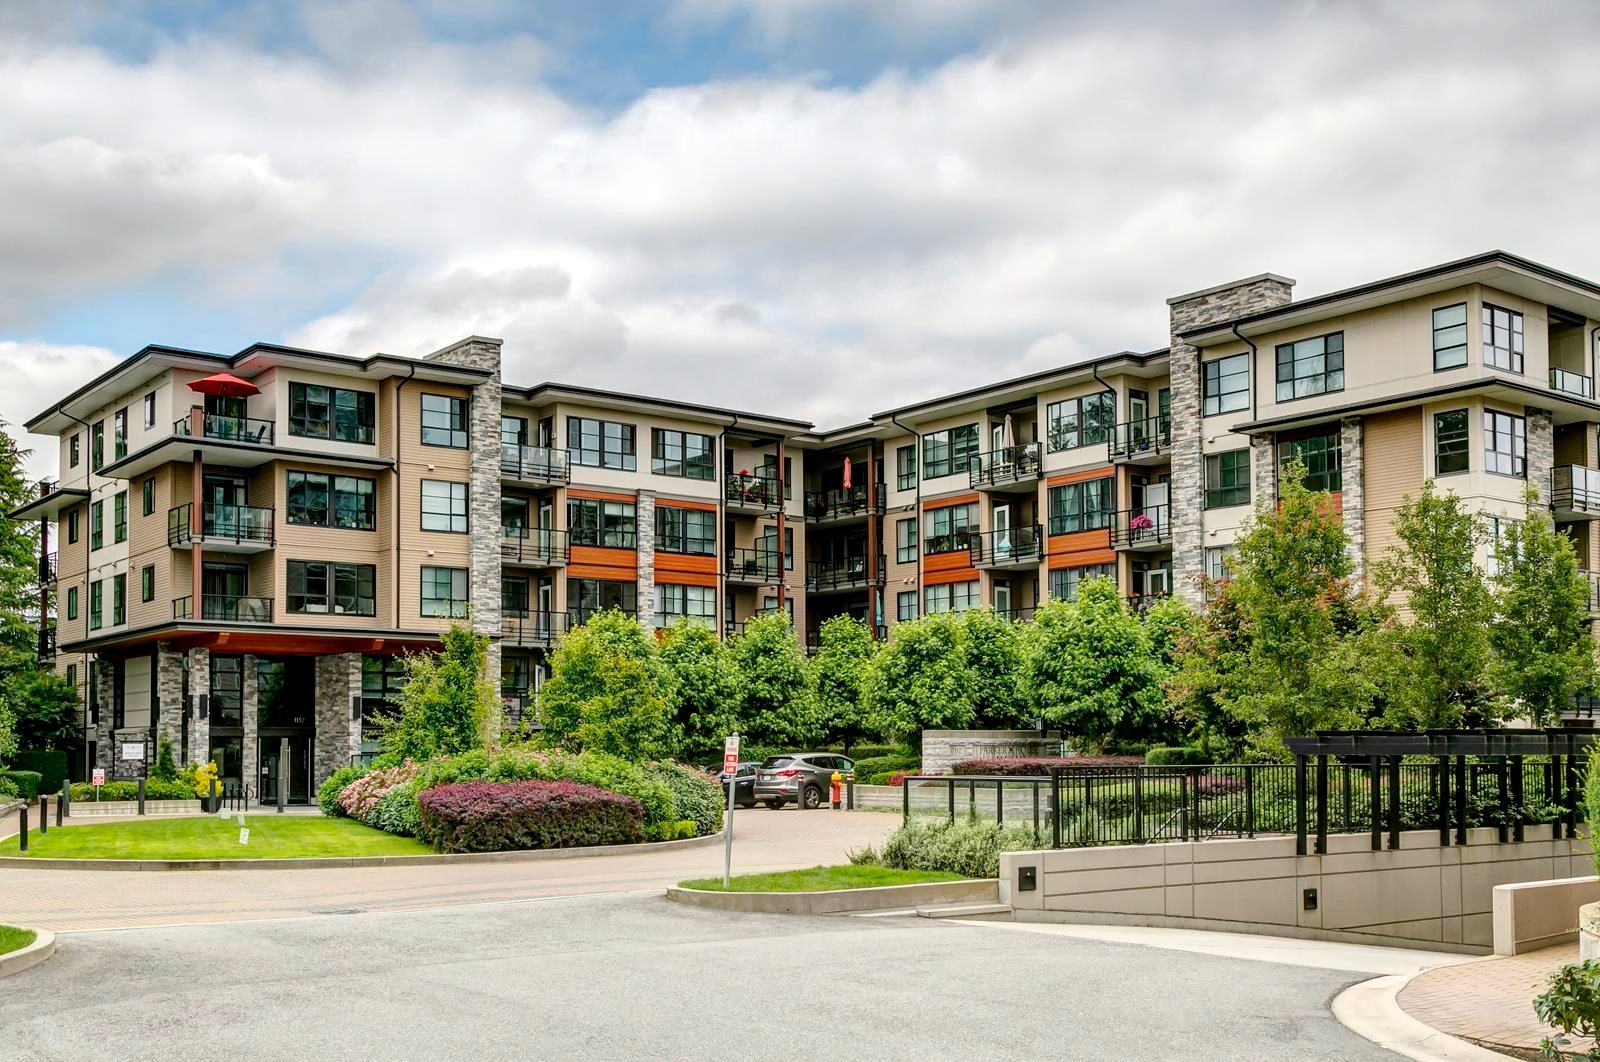 """Main Photo: 208 1152 WINDSOR Mews in Coquitlam: New Horizons Condo for sale in """"Parker House by Polygon"""" : MLS®# R2599075"""